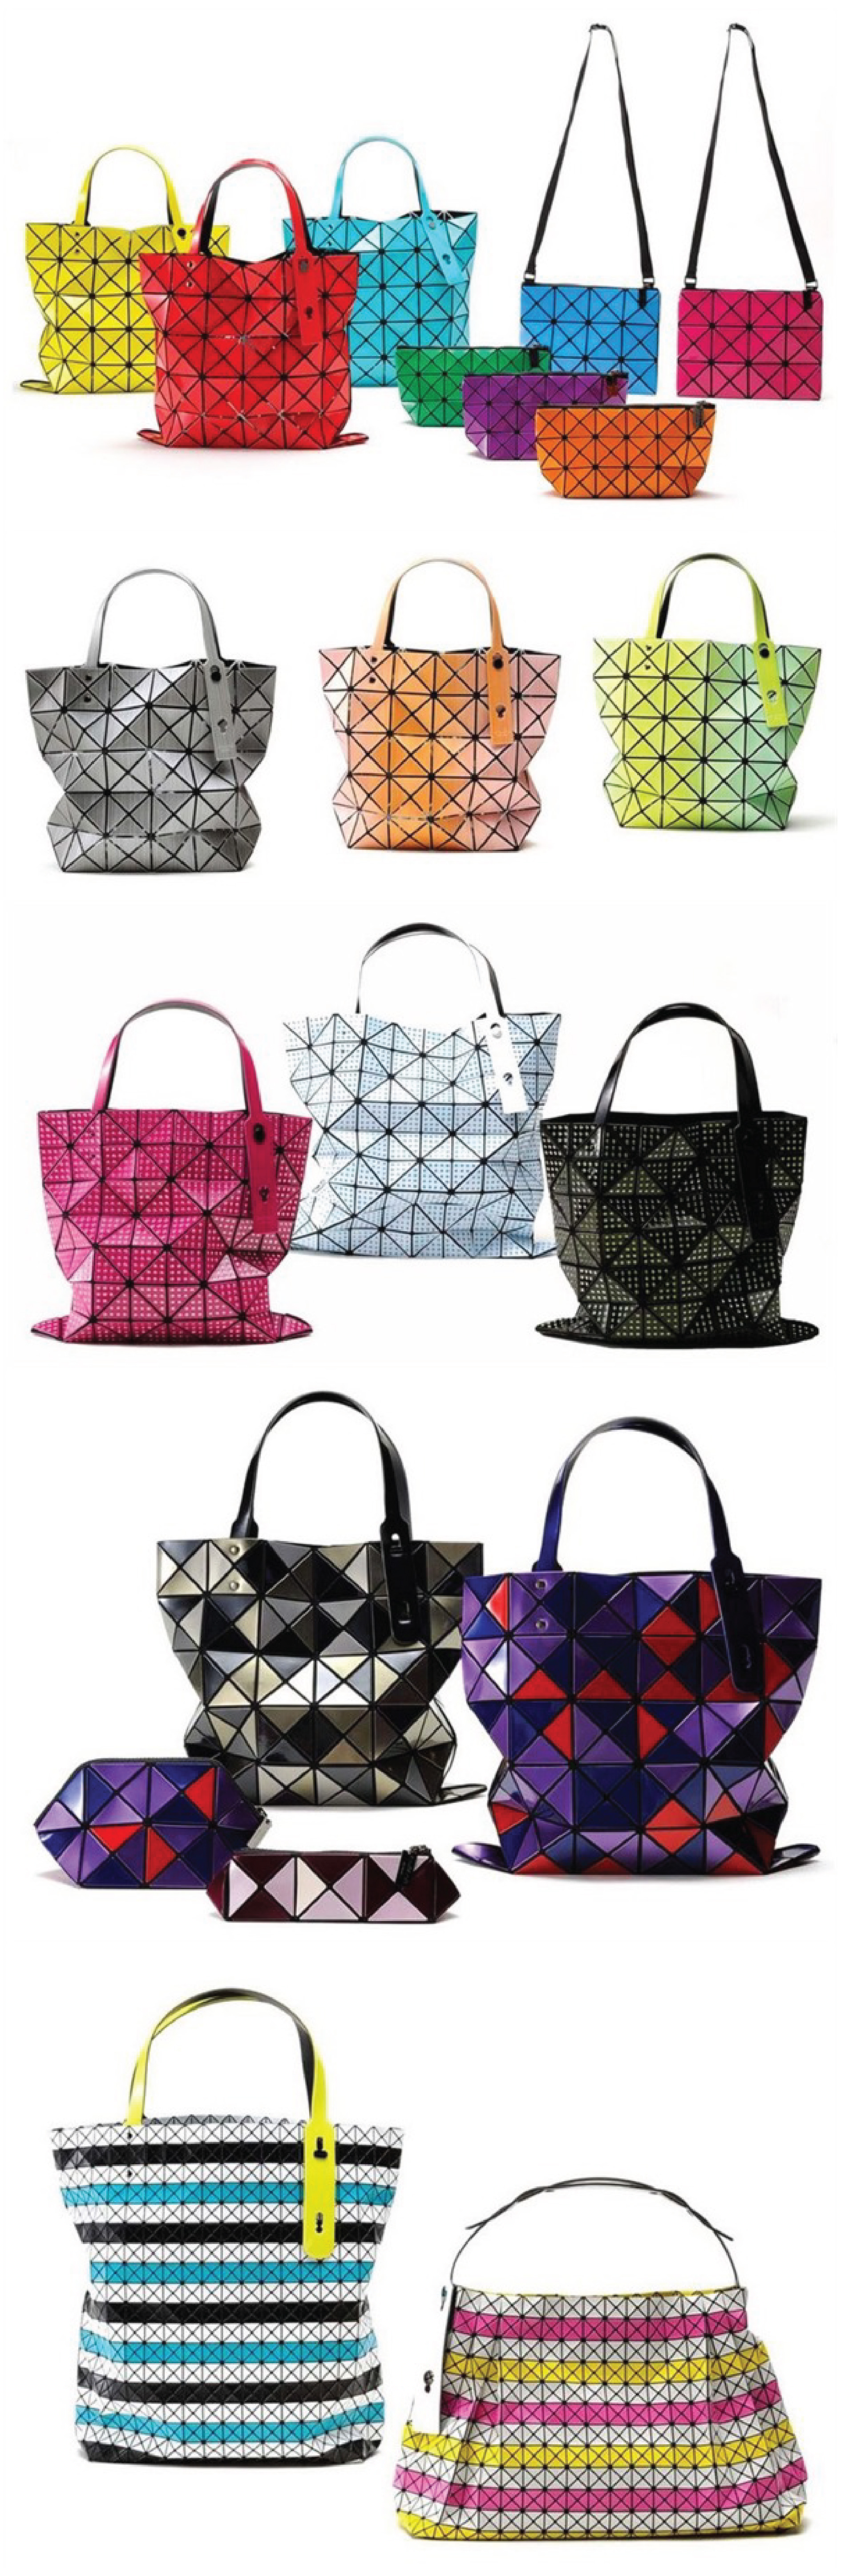 bao bao bags by issey miyake products frauen taschen. Black Bedroom Furniture Sets. Home Design Ideas